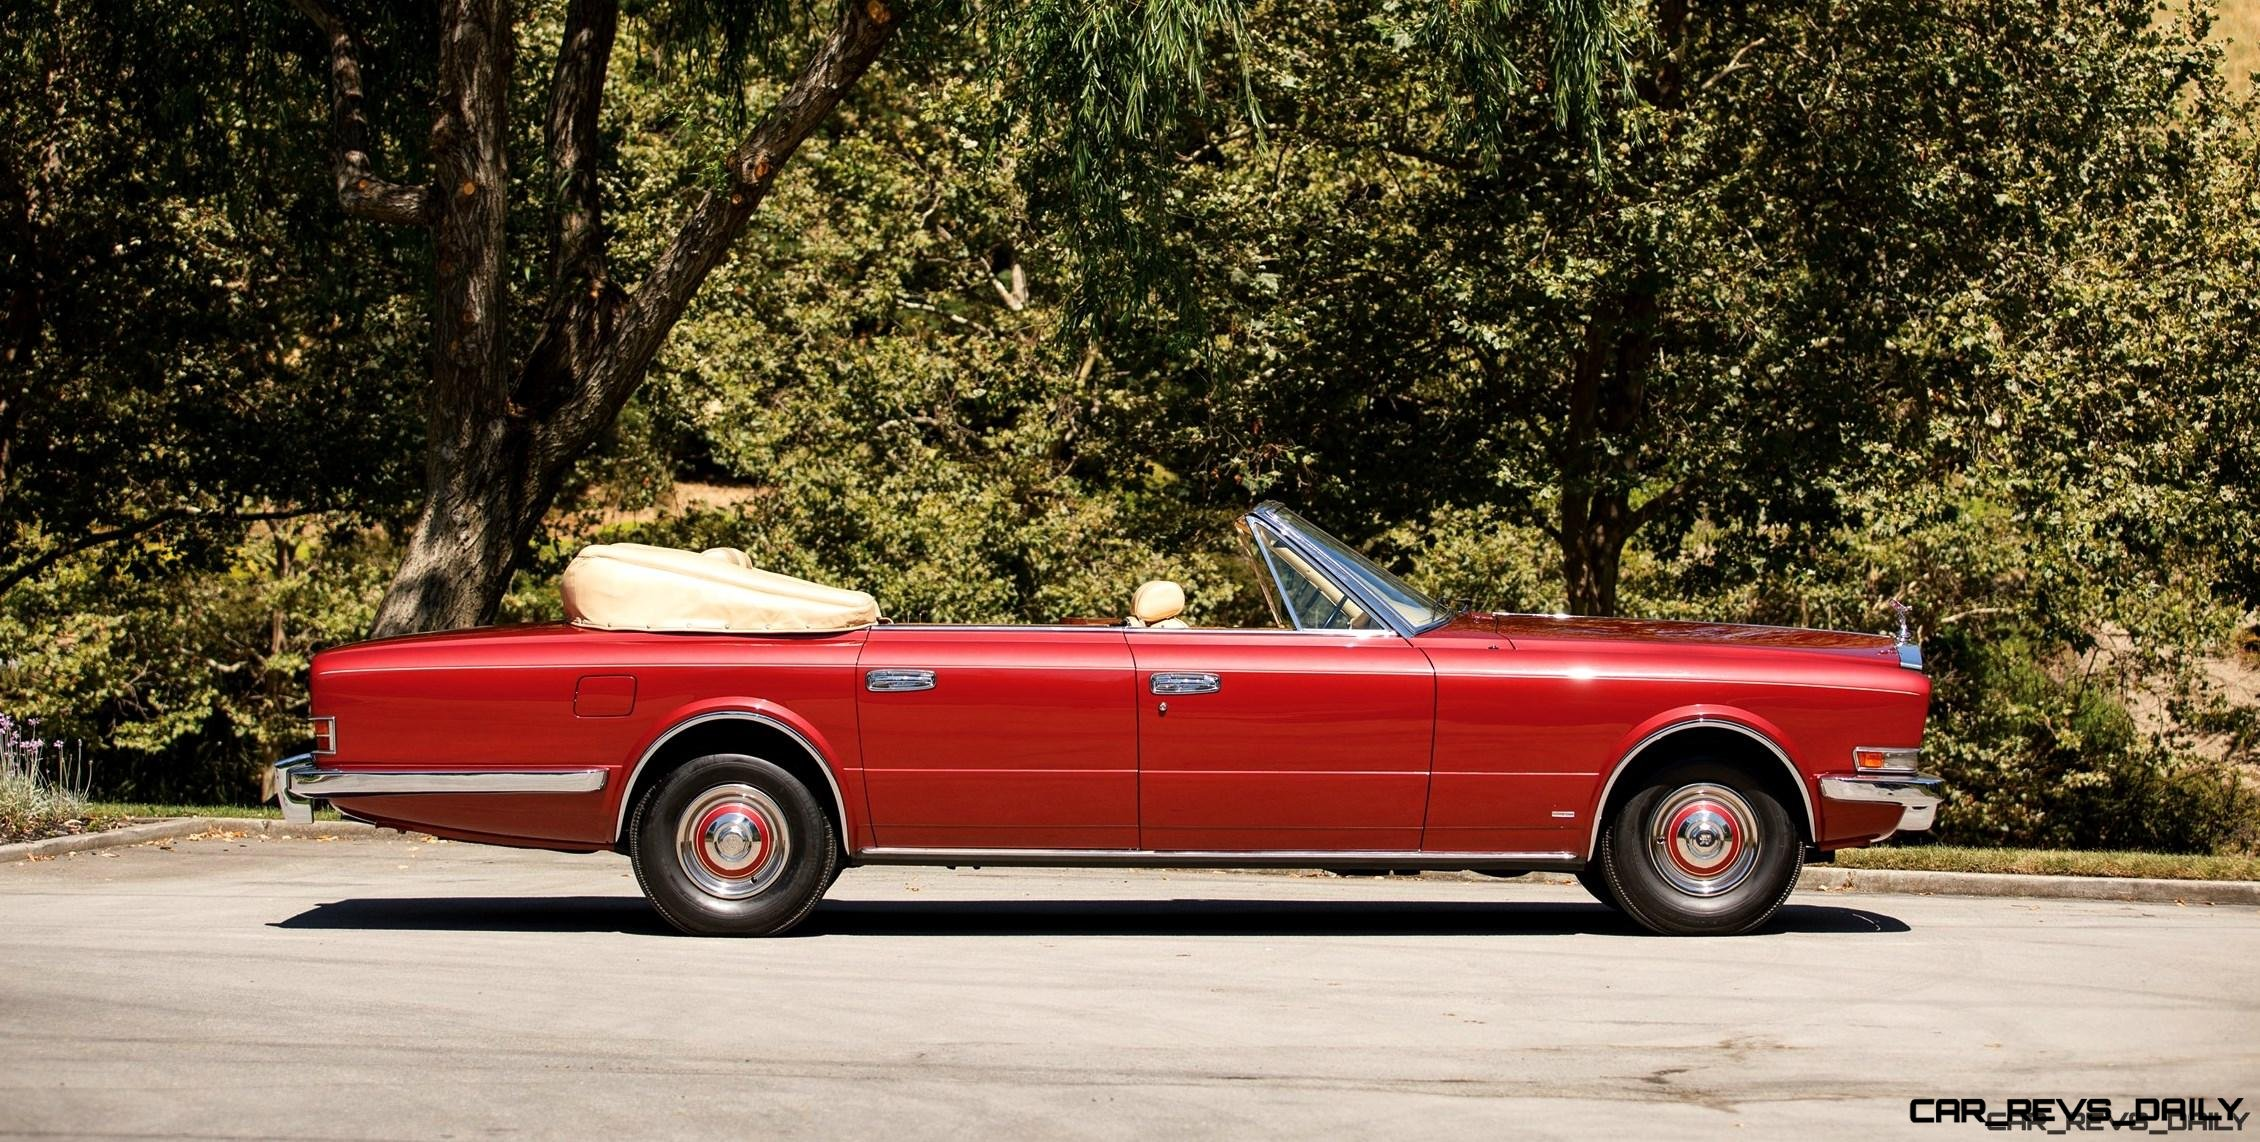 1971 Rolls-Royce Phantom VI Cabriolet by Frua » CAR SHOPPING